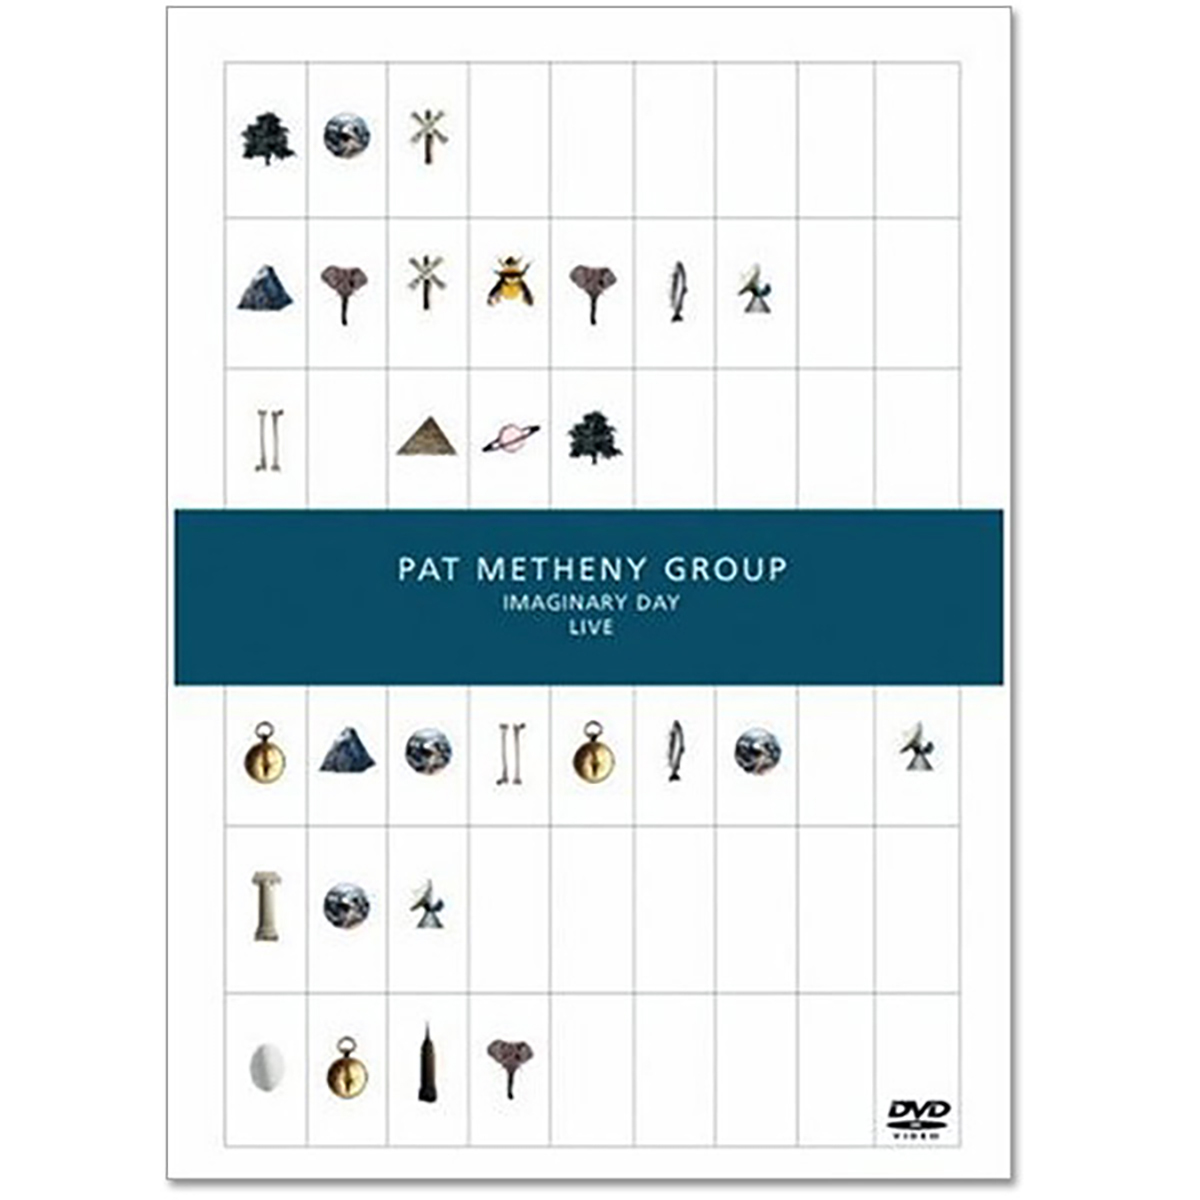 Pat Metheny - Imaginary Day DVD